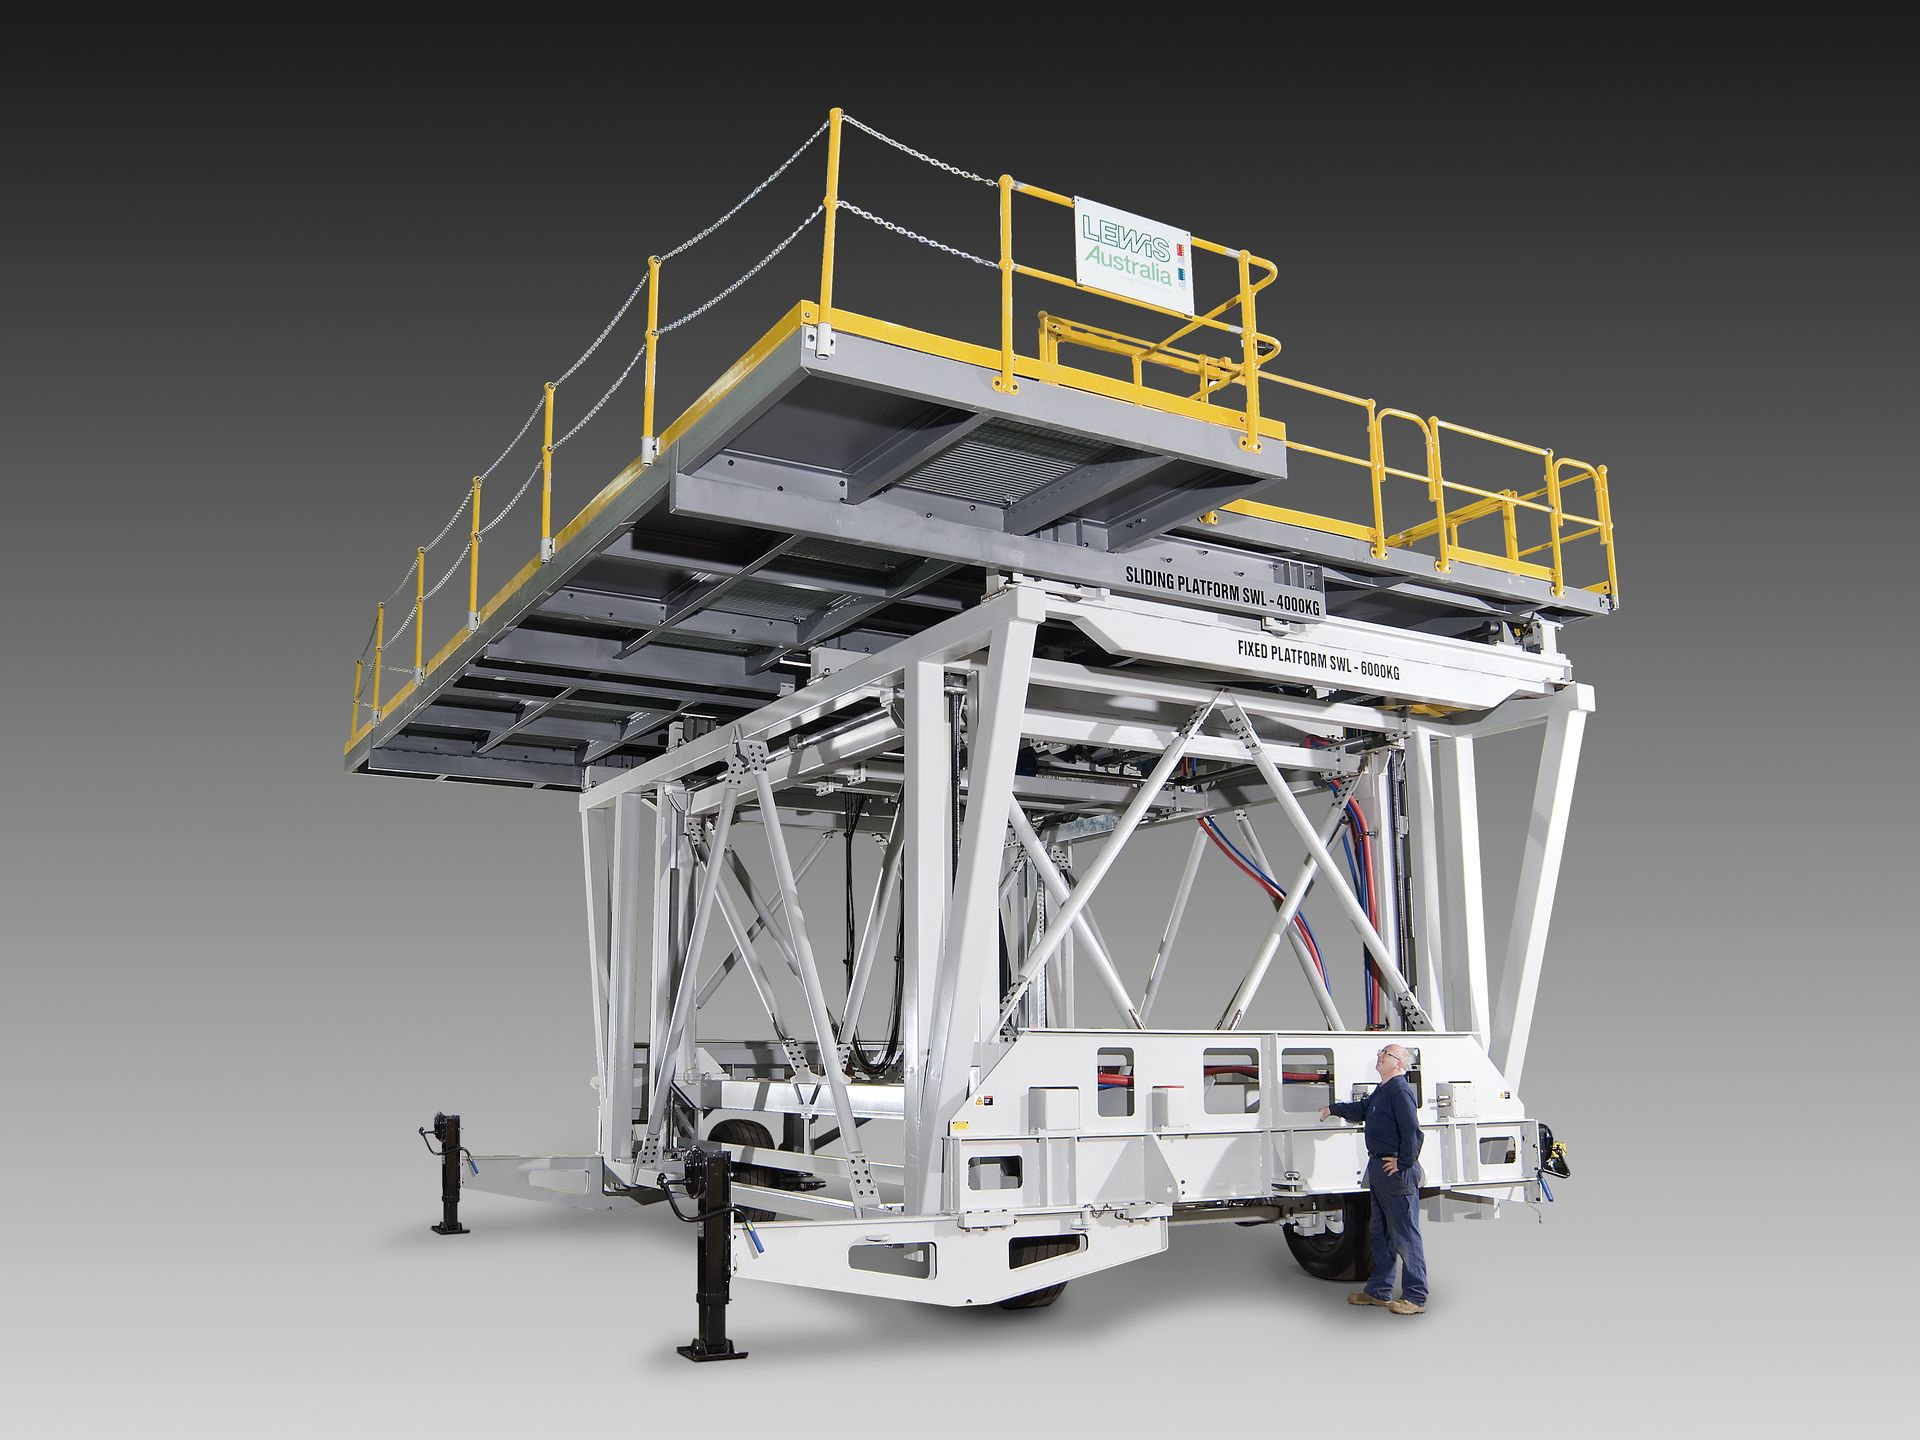 Elevating Work Platform